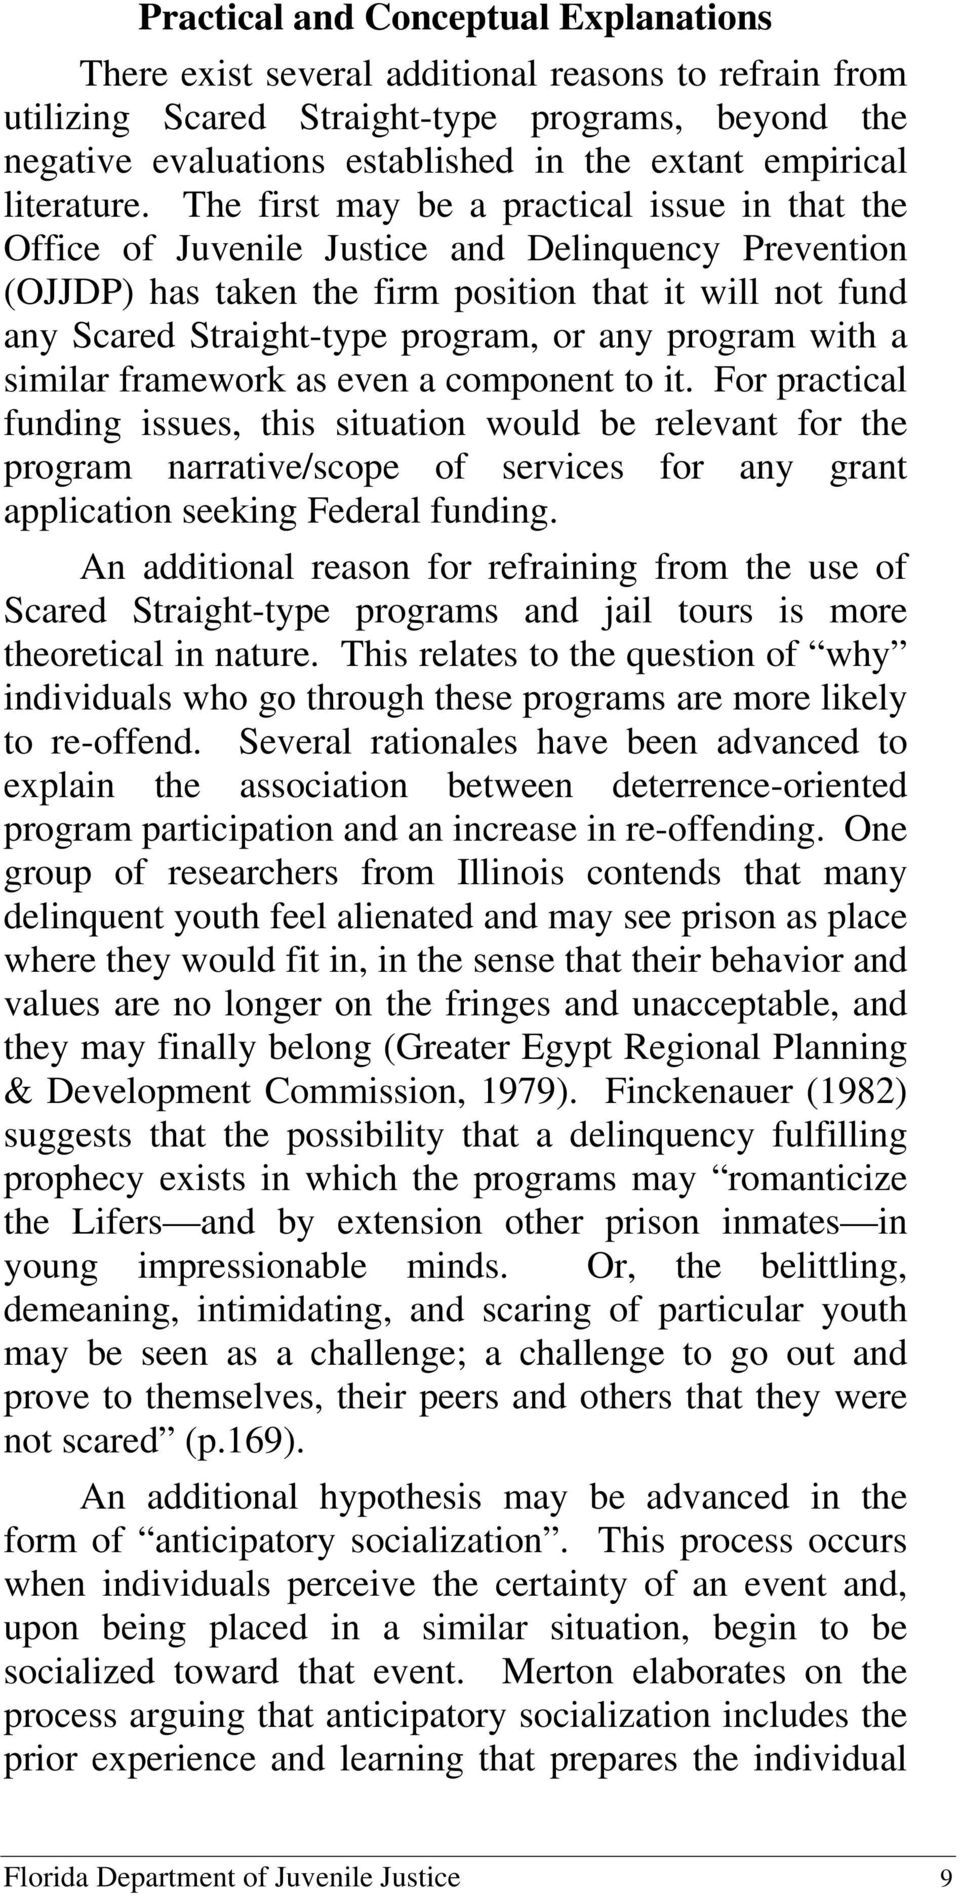 The first may be a practical issue in that the Office of Juvenile Justice and Delinquency Prevention (OJJDP) has taken the firm position that it will not fund any Scared Straight-type program, or any